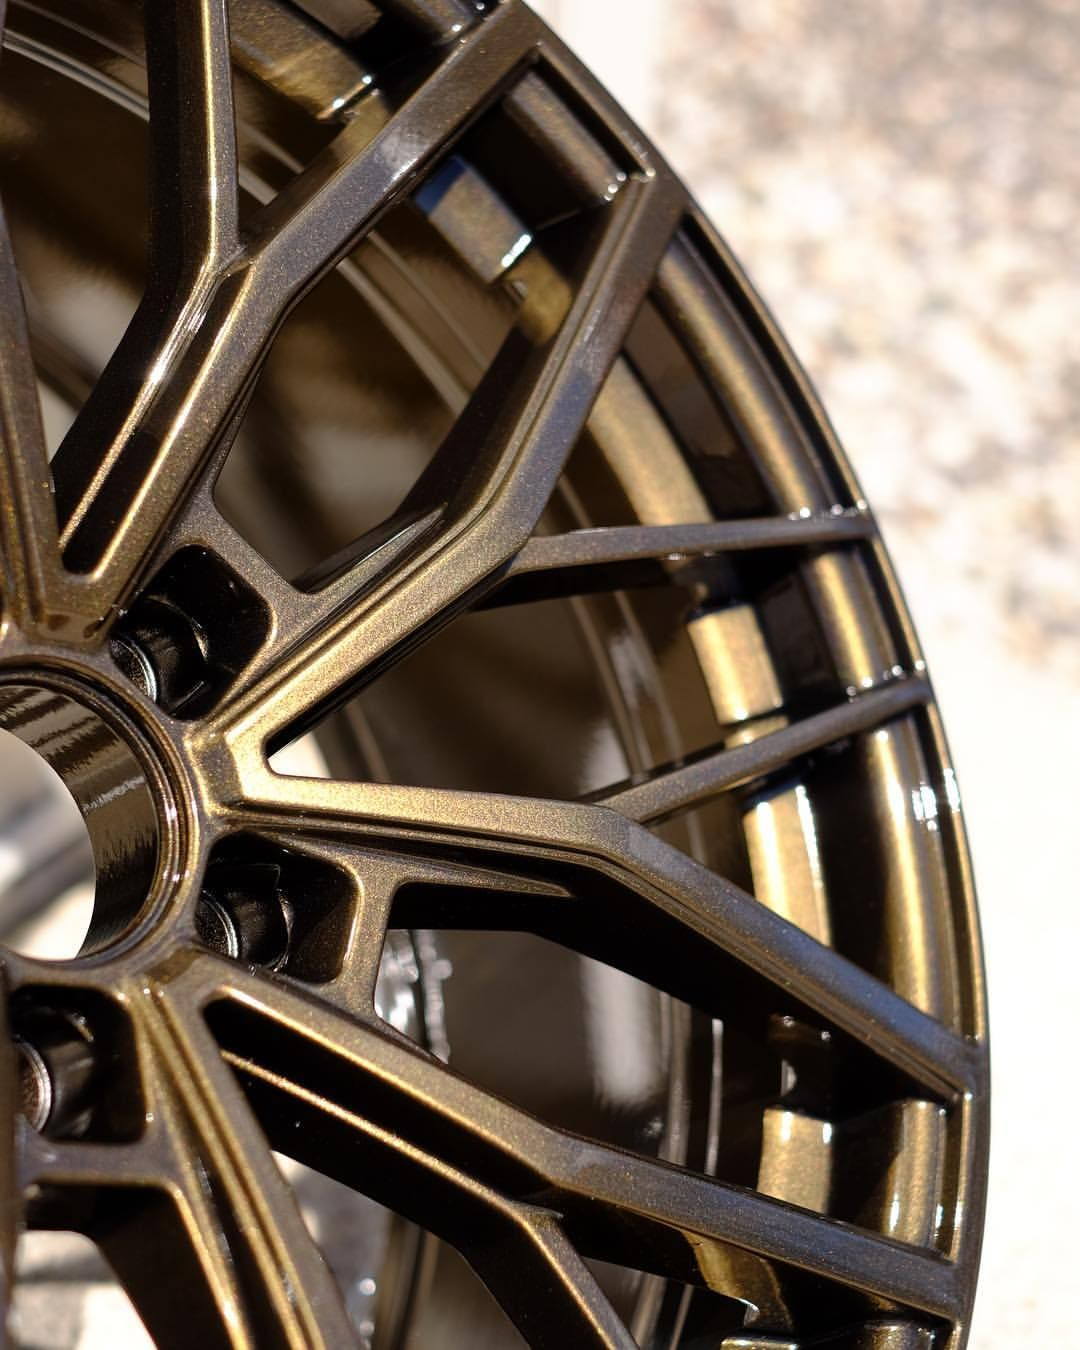 20 ruffino wheels curb rash repaired and refinished in a